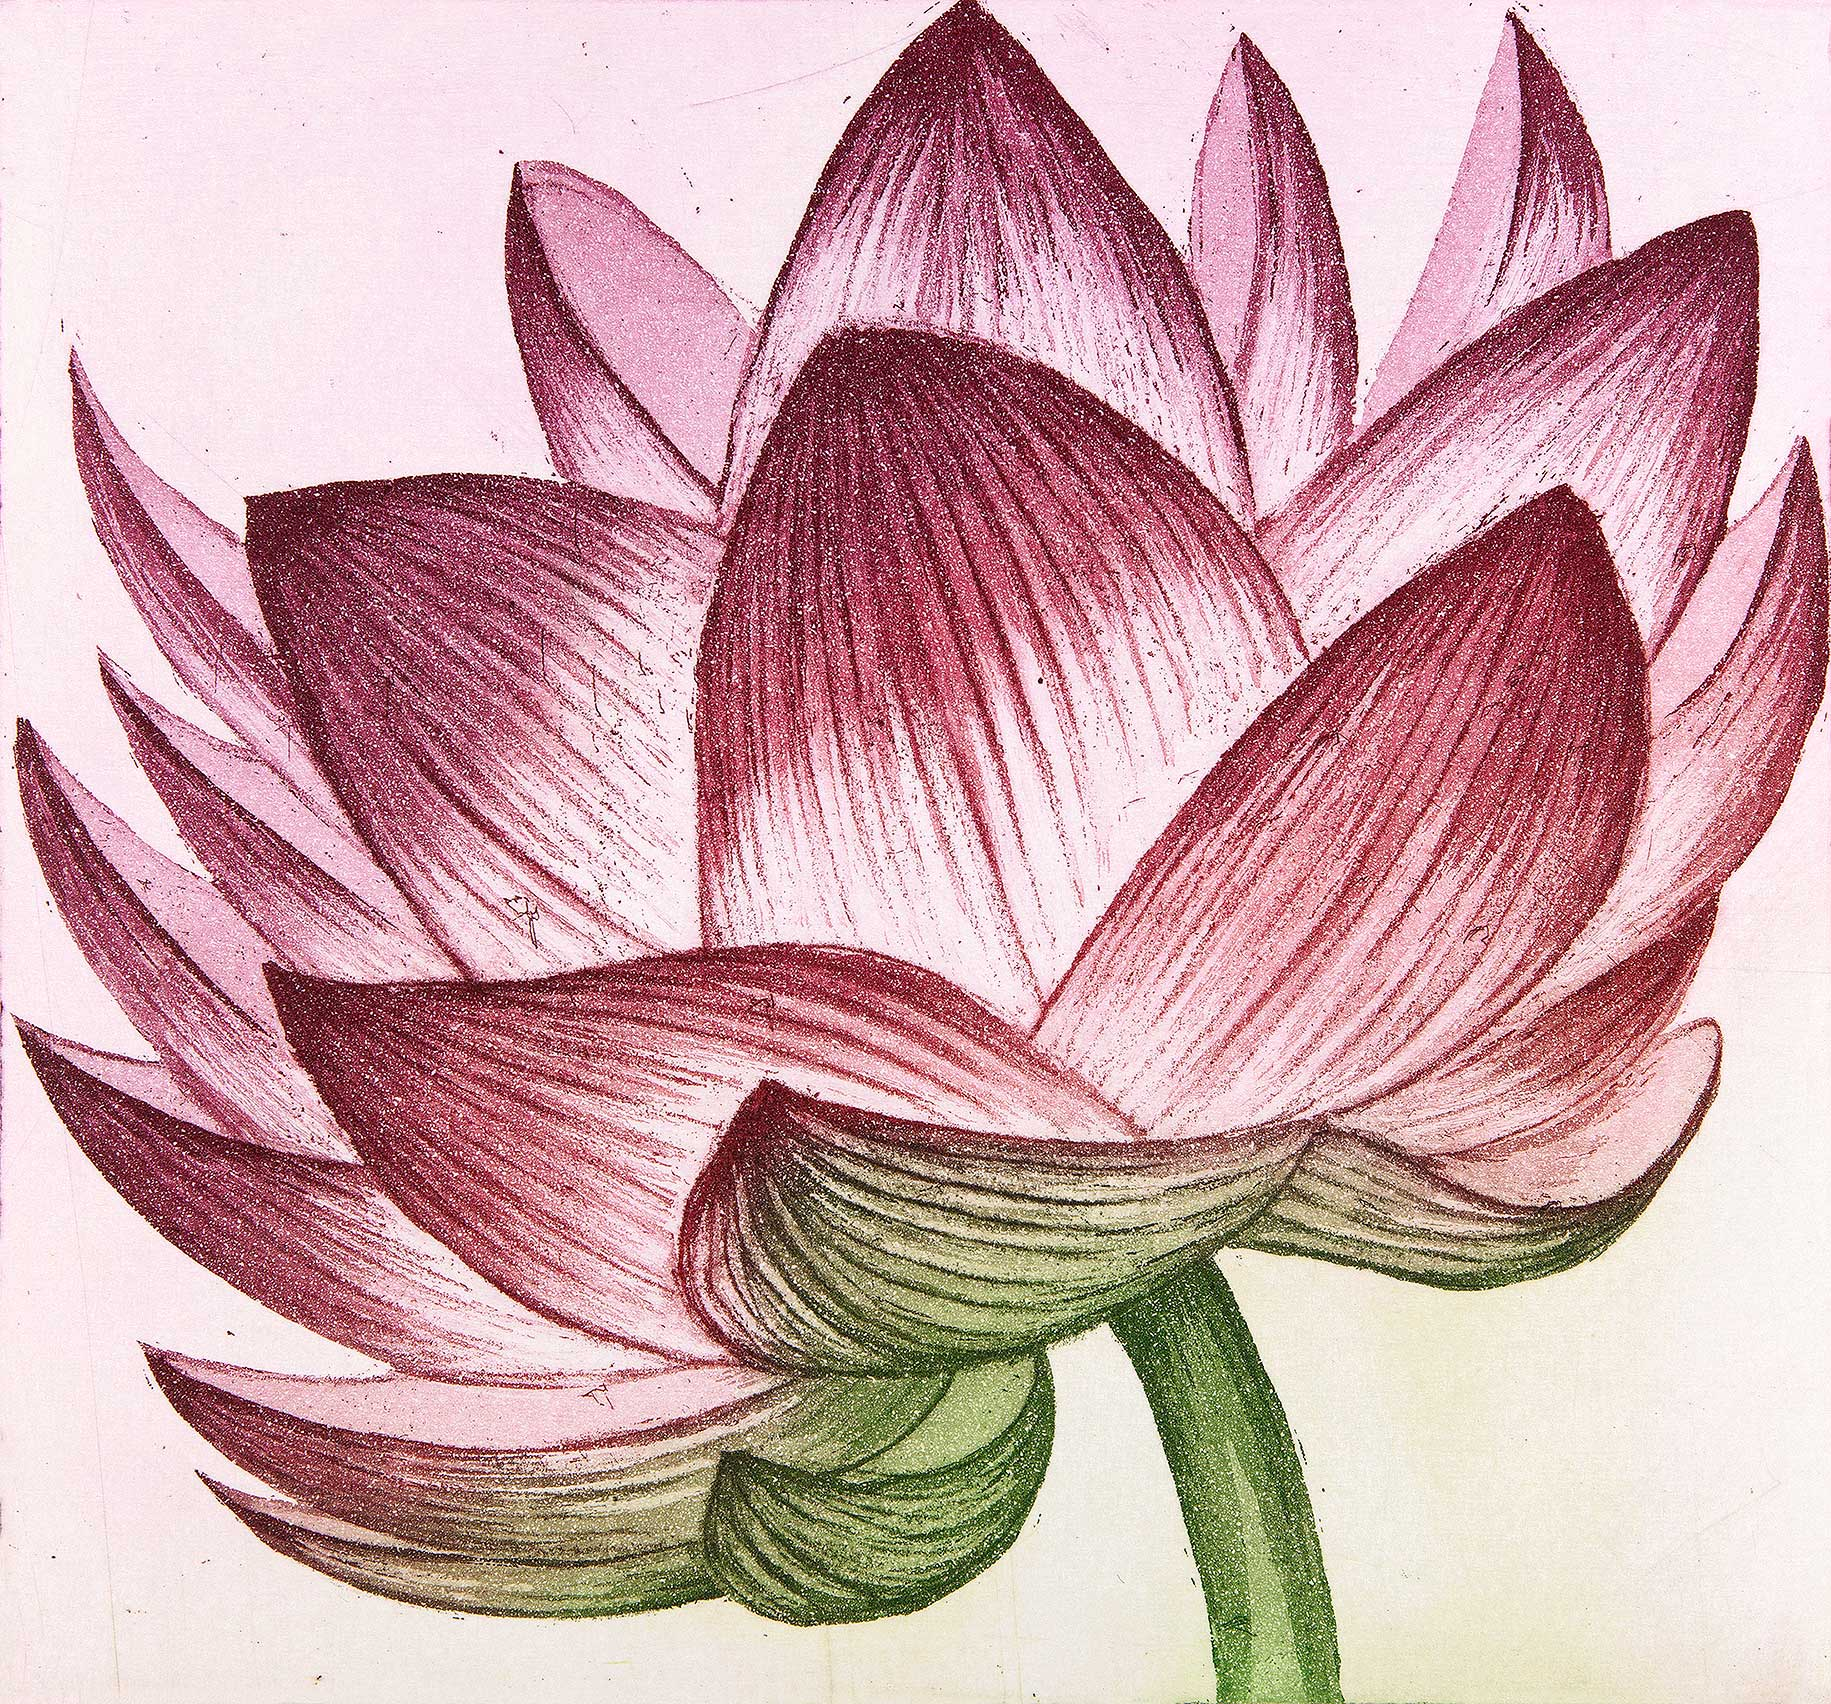 'Lotus' by Morna Rhys